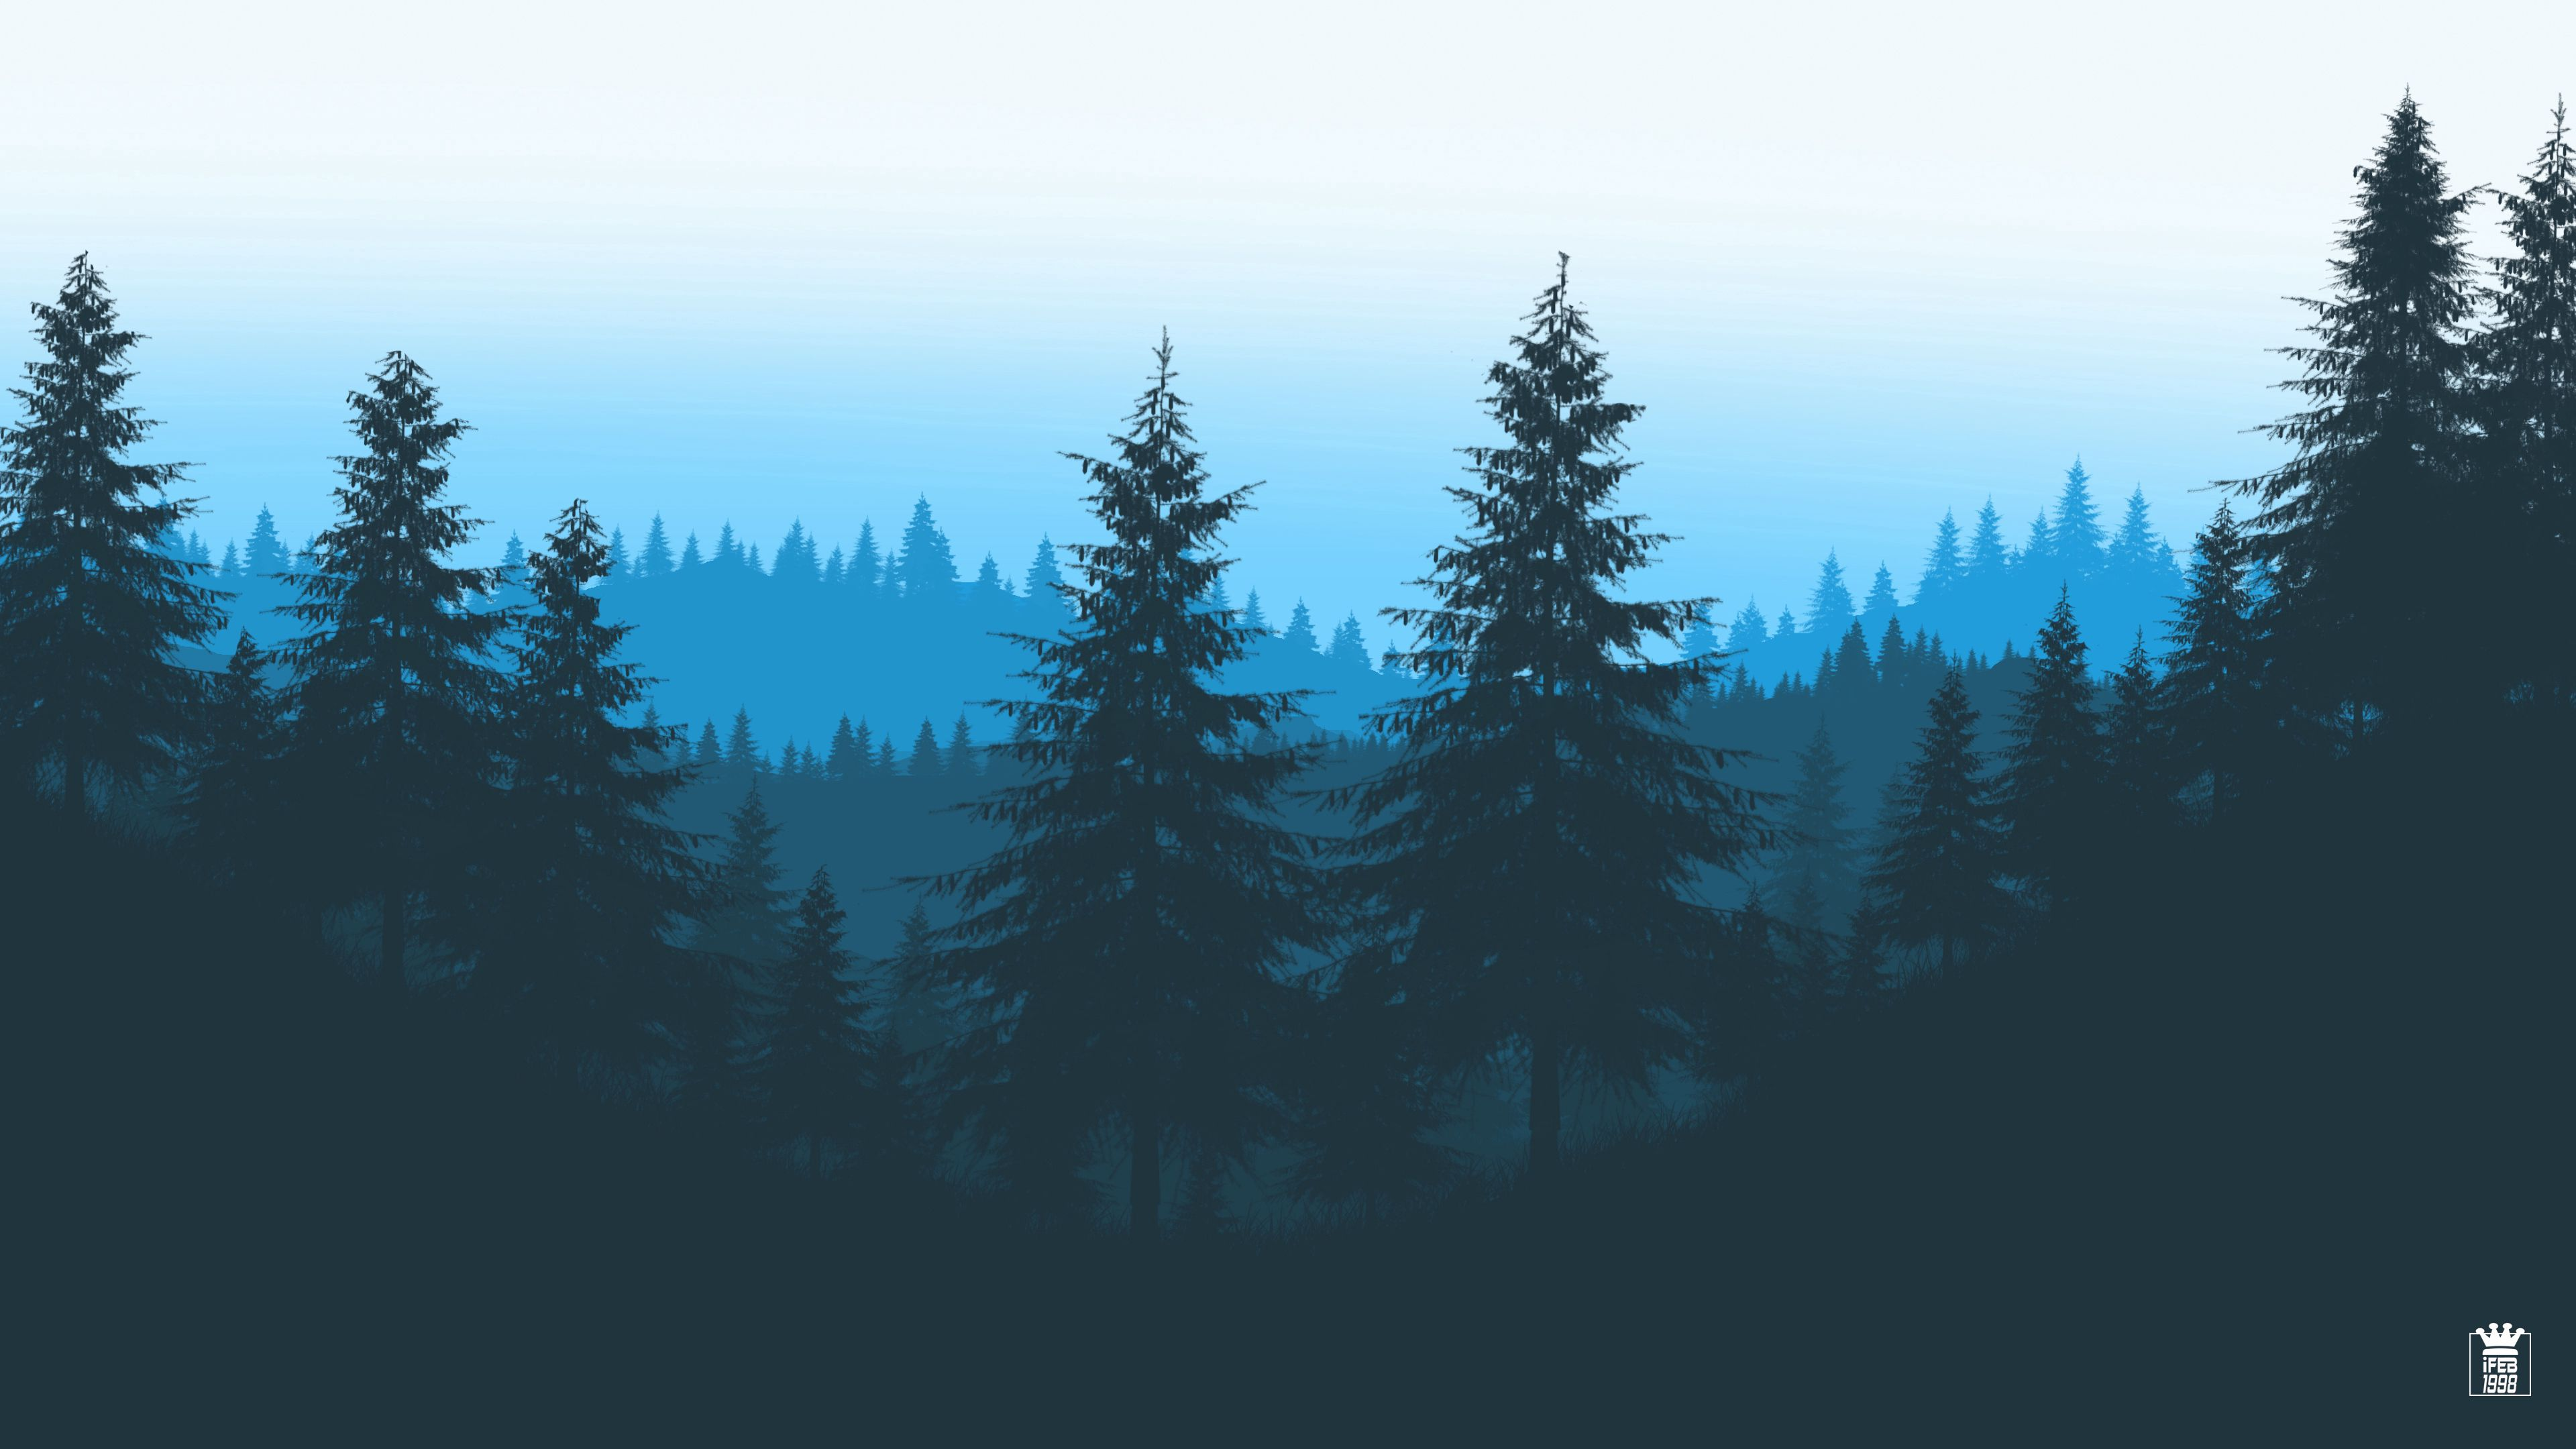 105353 download wallpaper Trees, Art, Mountains, Vector, Forest screensavers and pictures for free